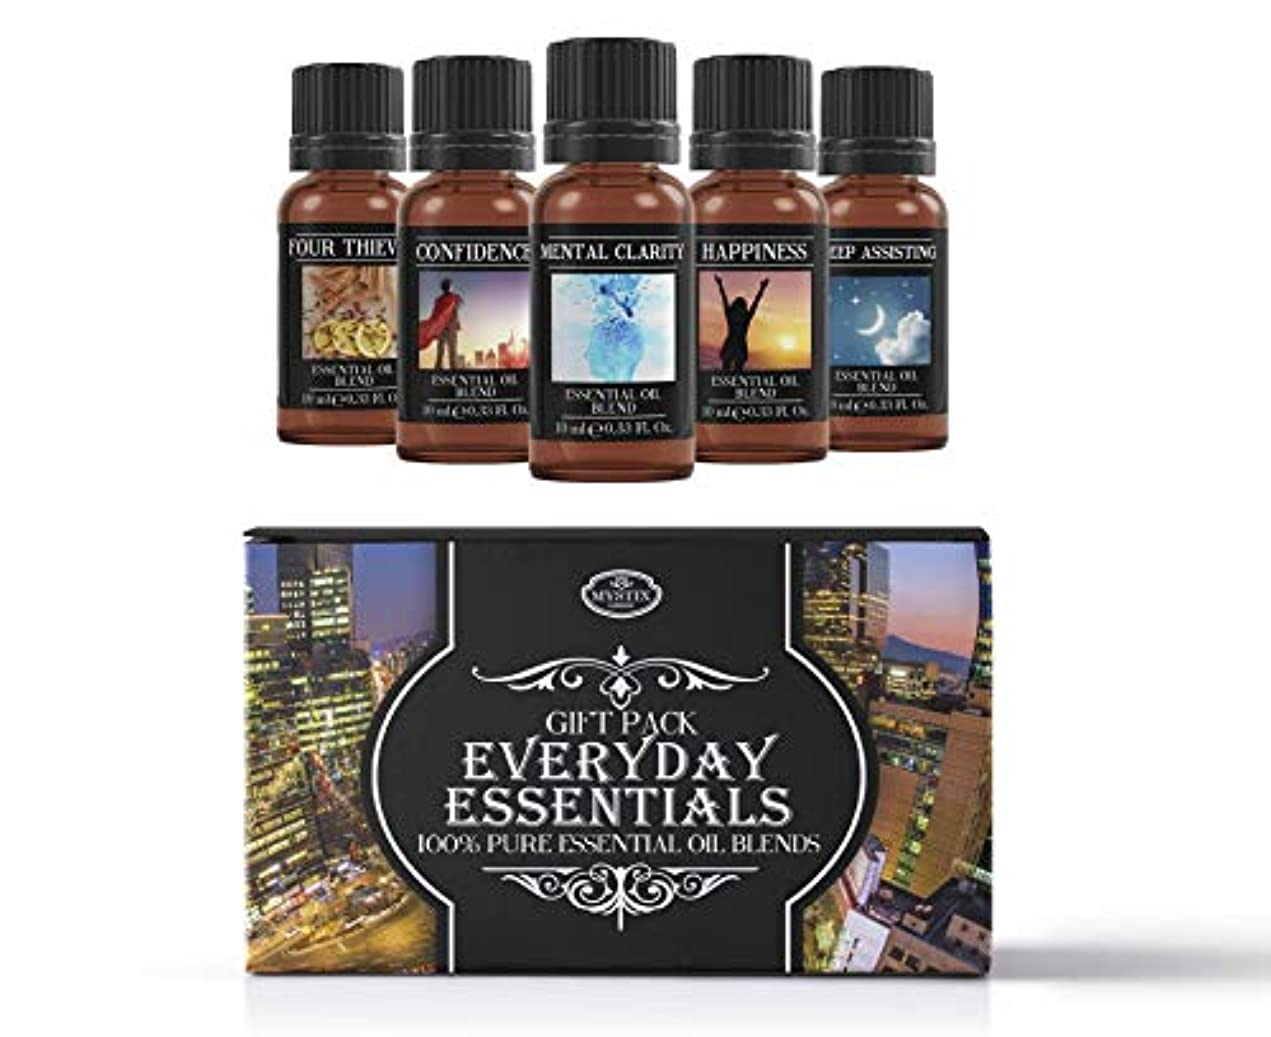 廊下熟読するまつげEveryday Essentials | Essential Oil Blend Gift Pack | Confidence, Four Thieves, Happiness, Mental Clarity, Sleep...